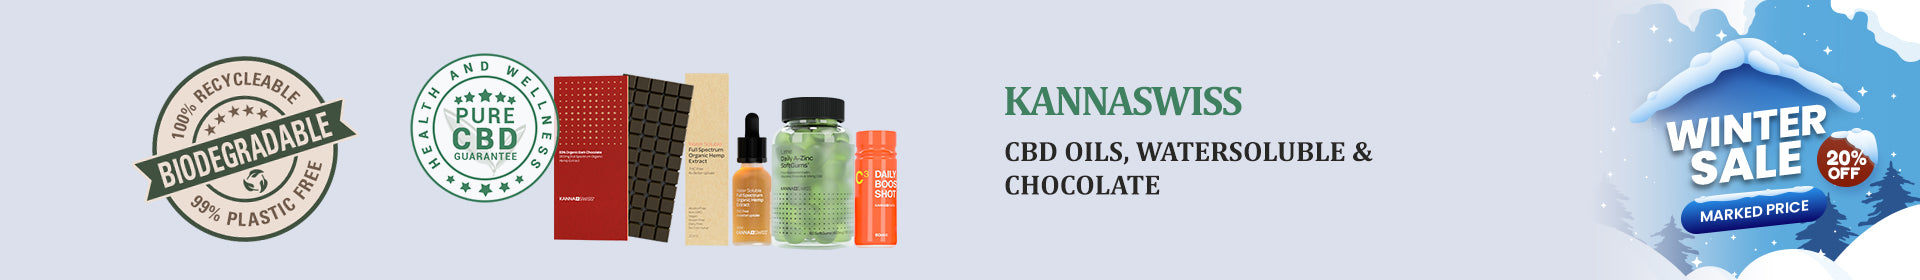 CBD Oils & Concentrates by KannaSwiss